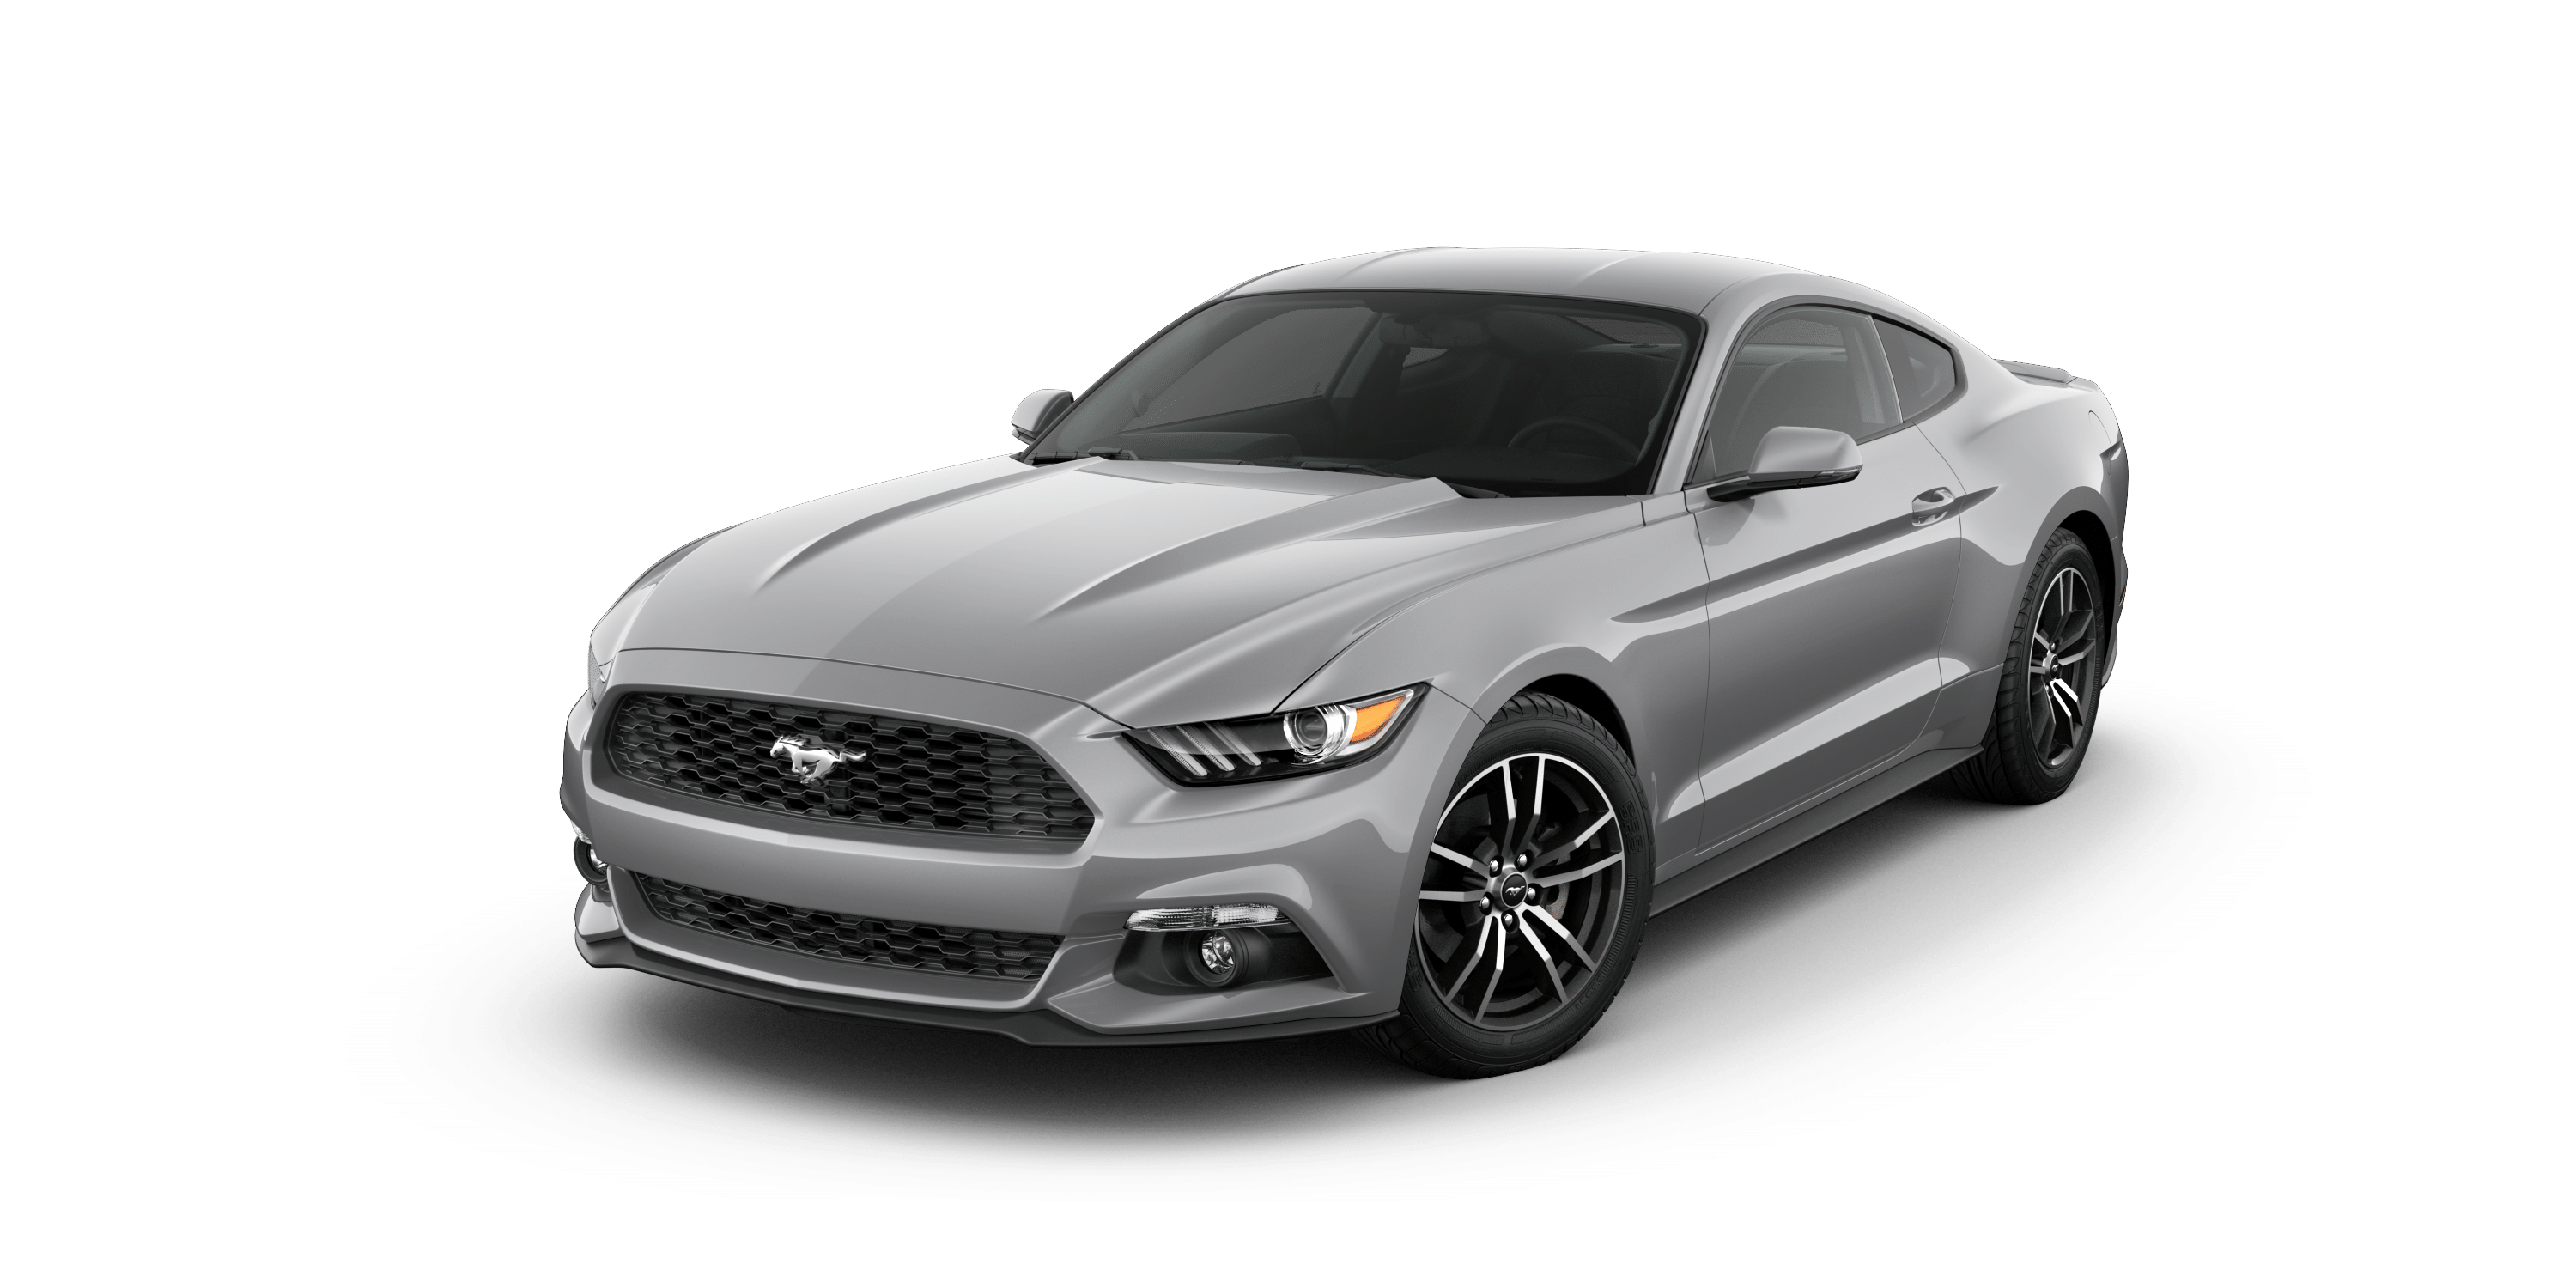 2017 Ford Mustang for sale in Sierra Vista 1FA6P8TH6H